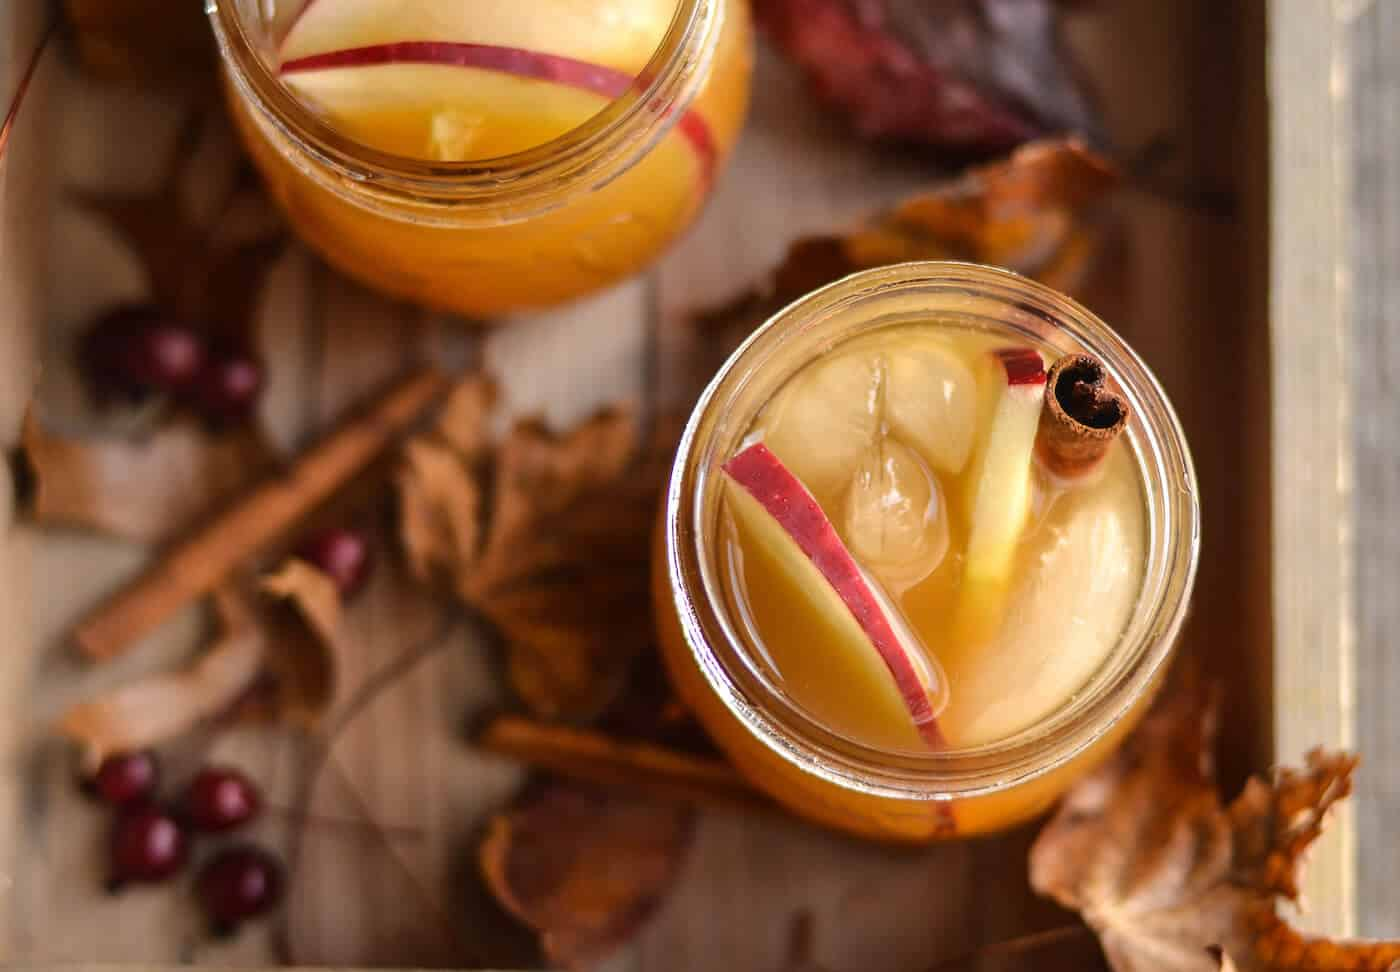 Enjoy the crisp flavors of fall with this tasty apple cider ginger beer cocktail! Spike with vodka and top with cinnamon sticks. So delicious!